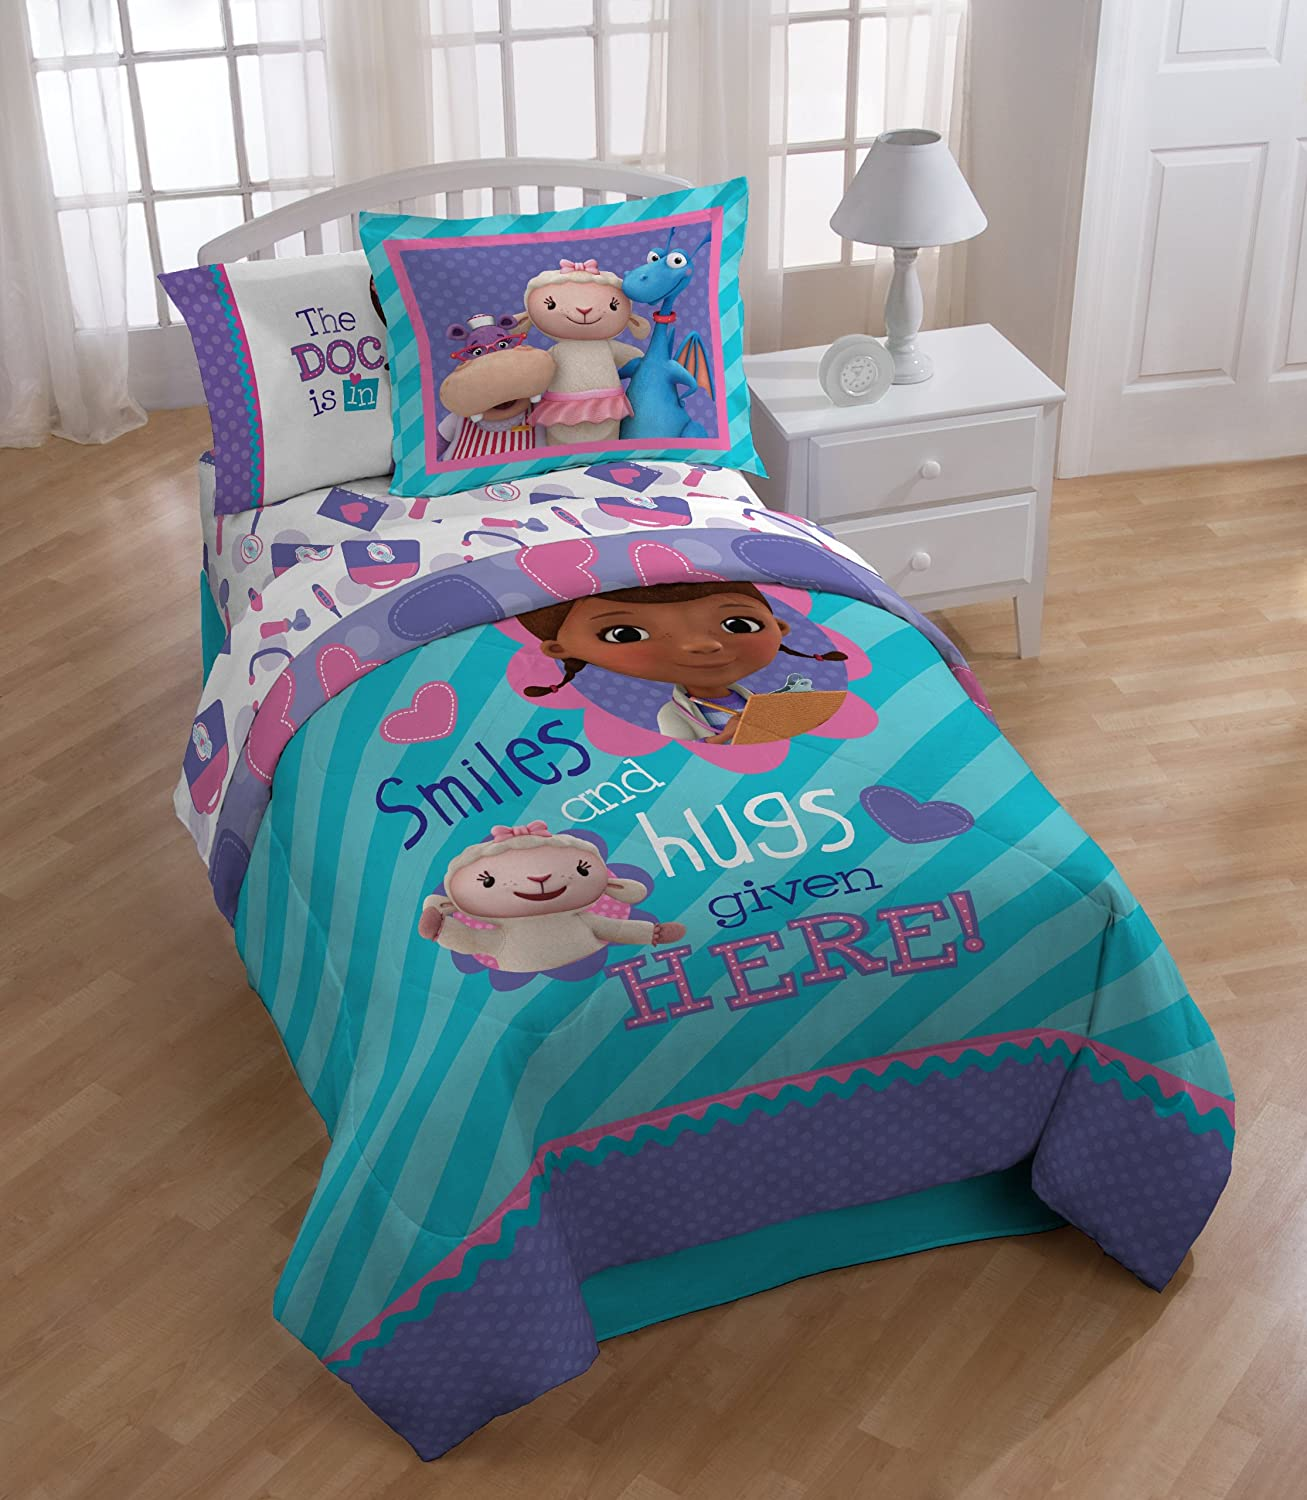 doc mcstuffins bedding totally totally bedrooms